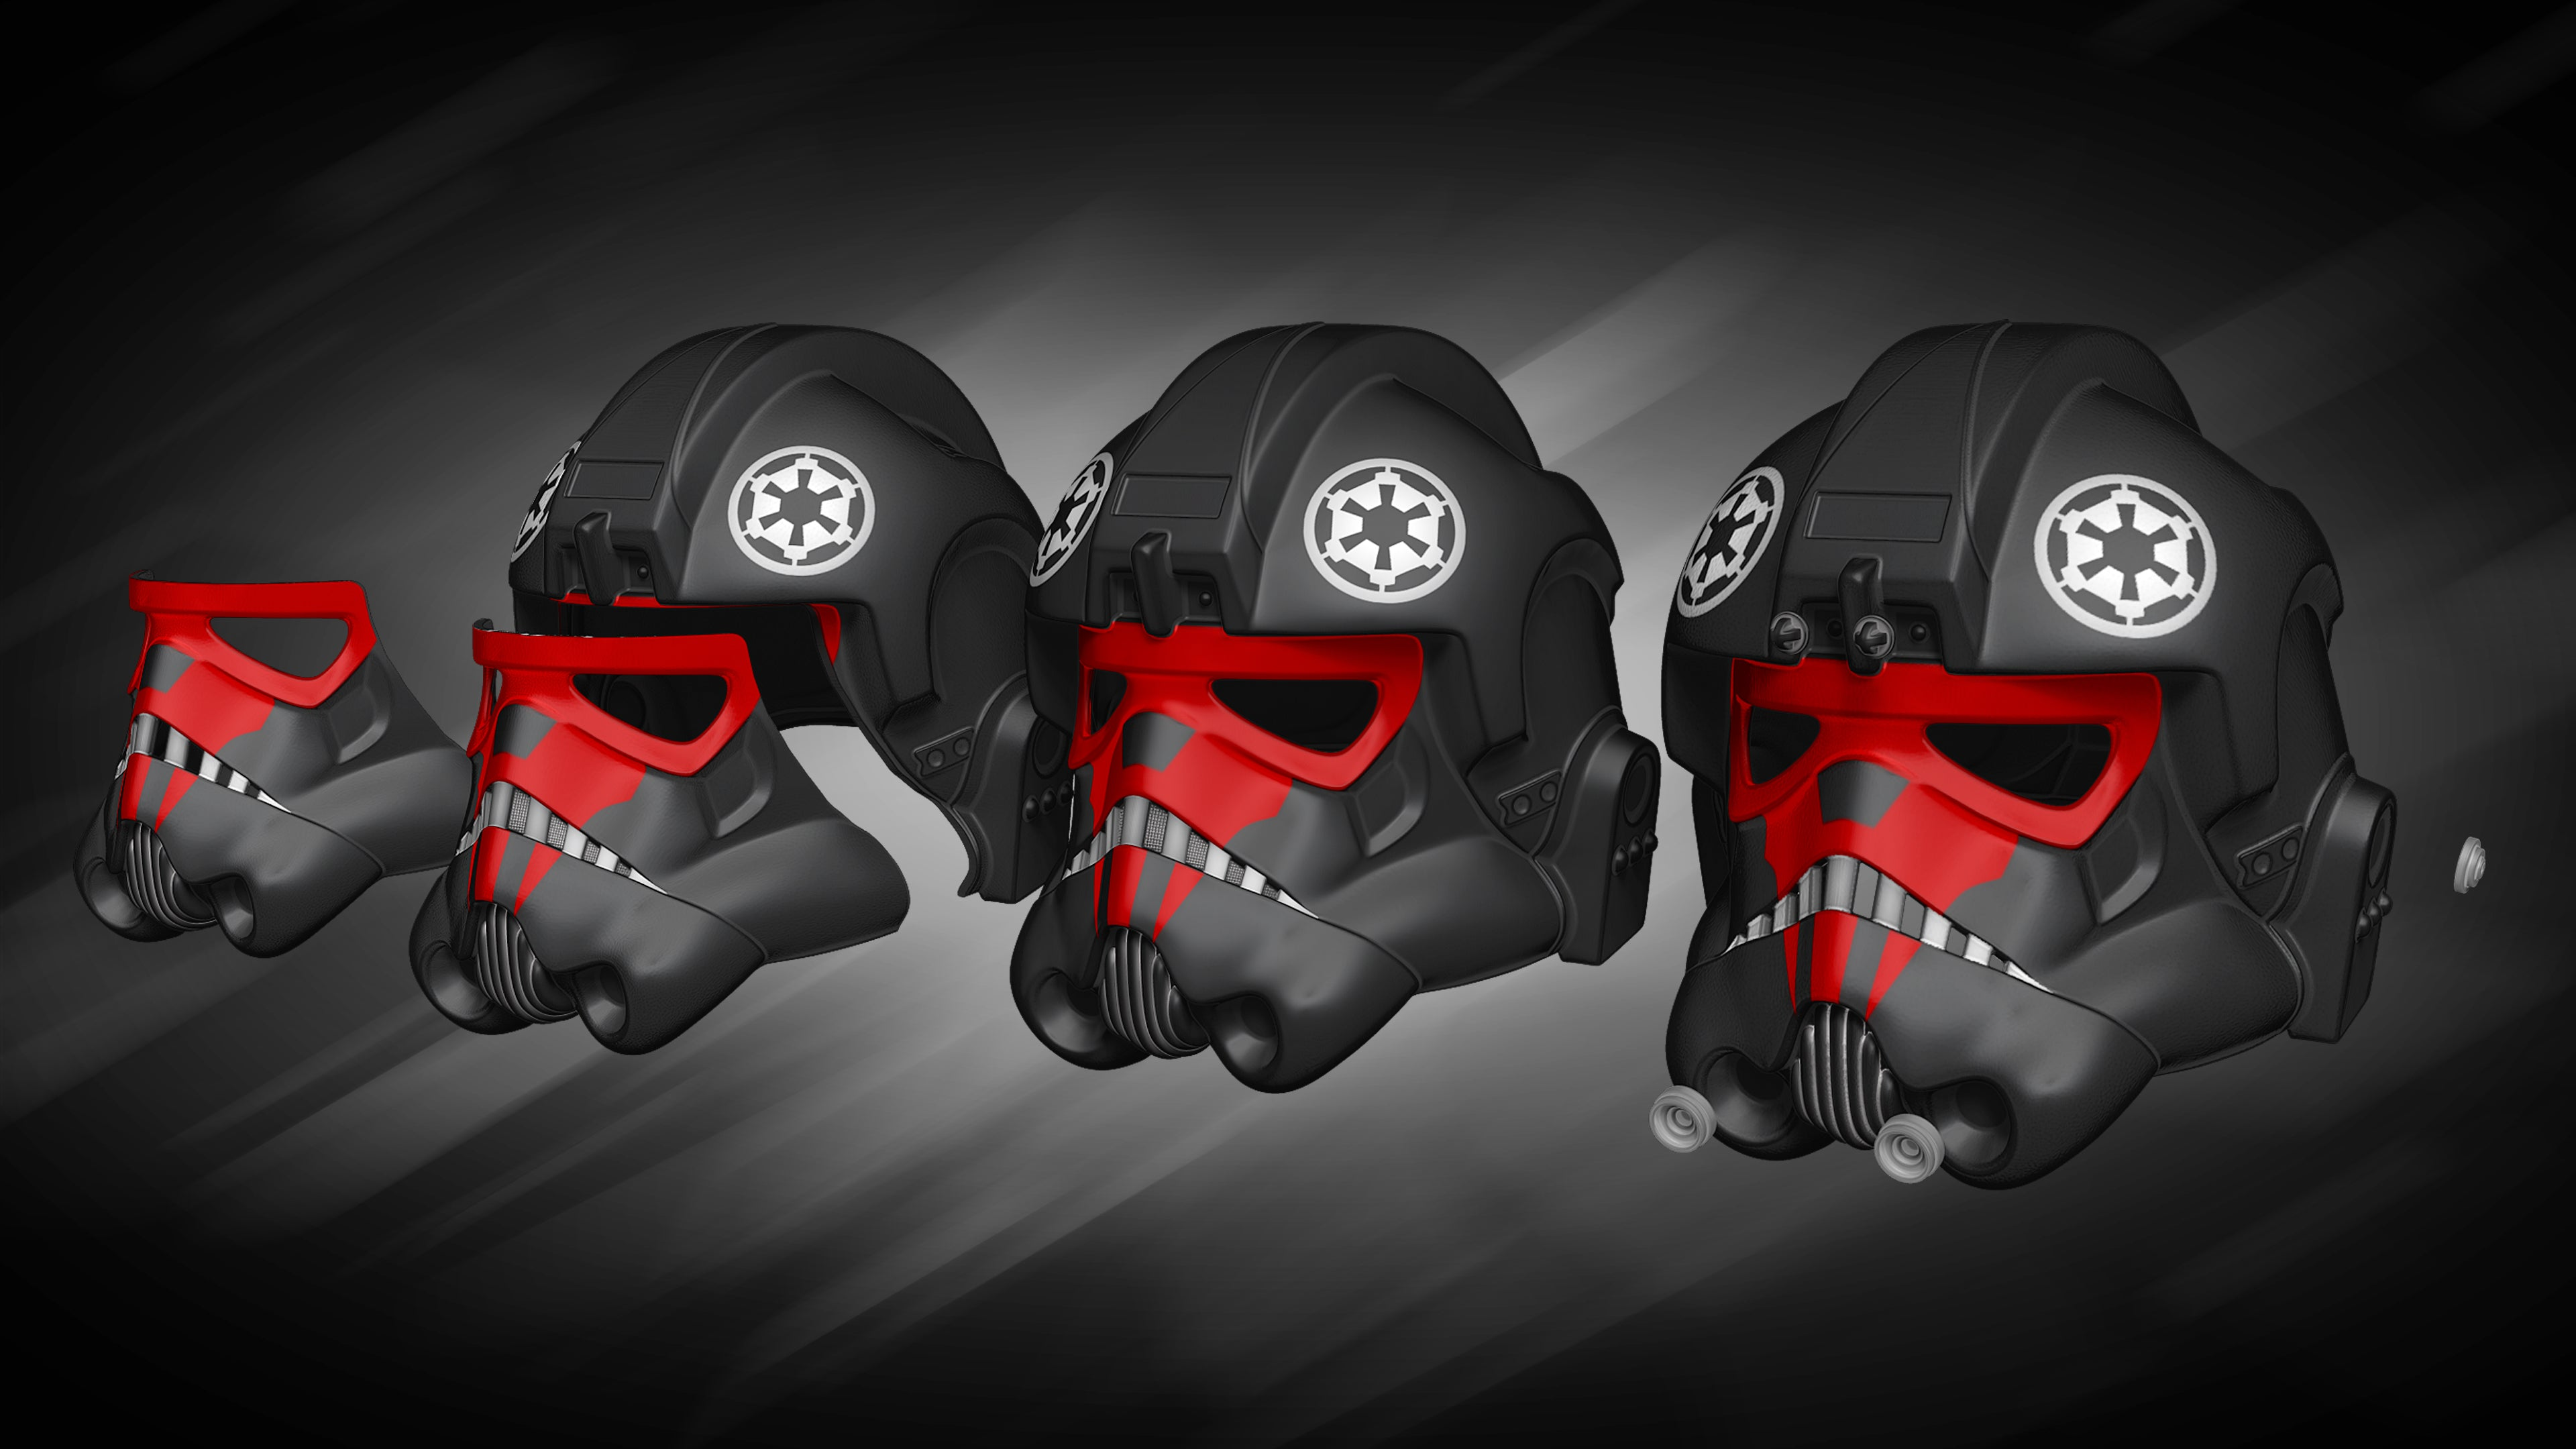 Tie Fighter Pilot Helmet - 3D Print Files - The Galactic Armory